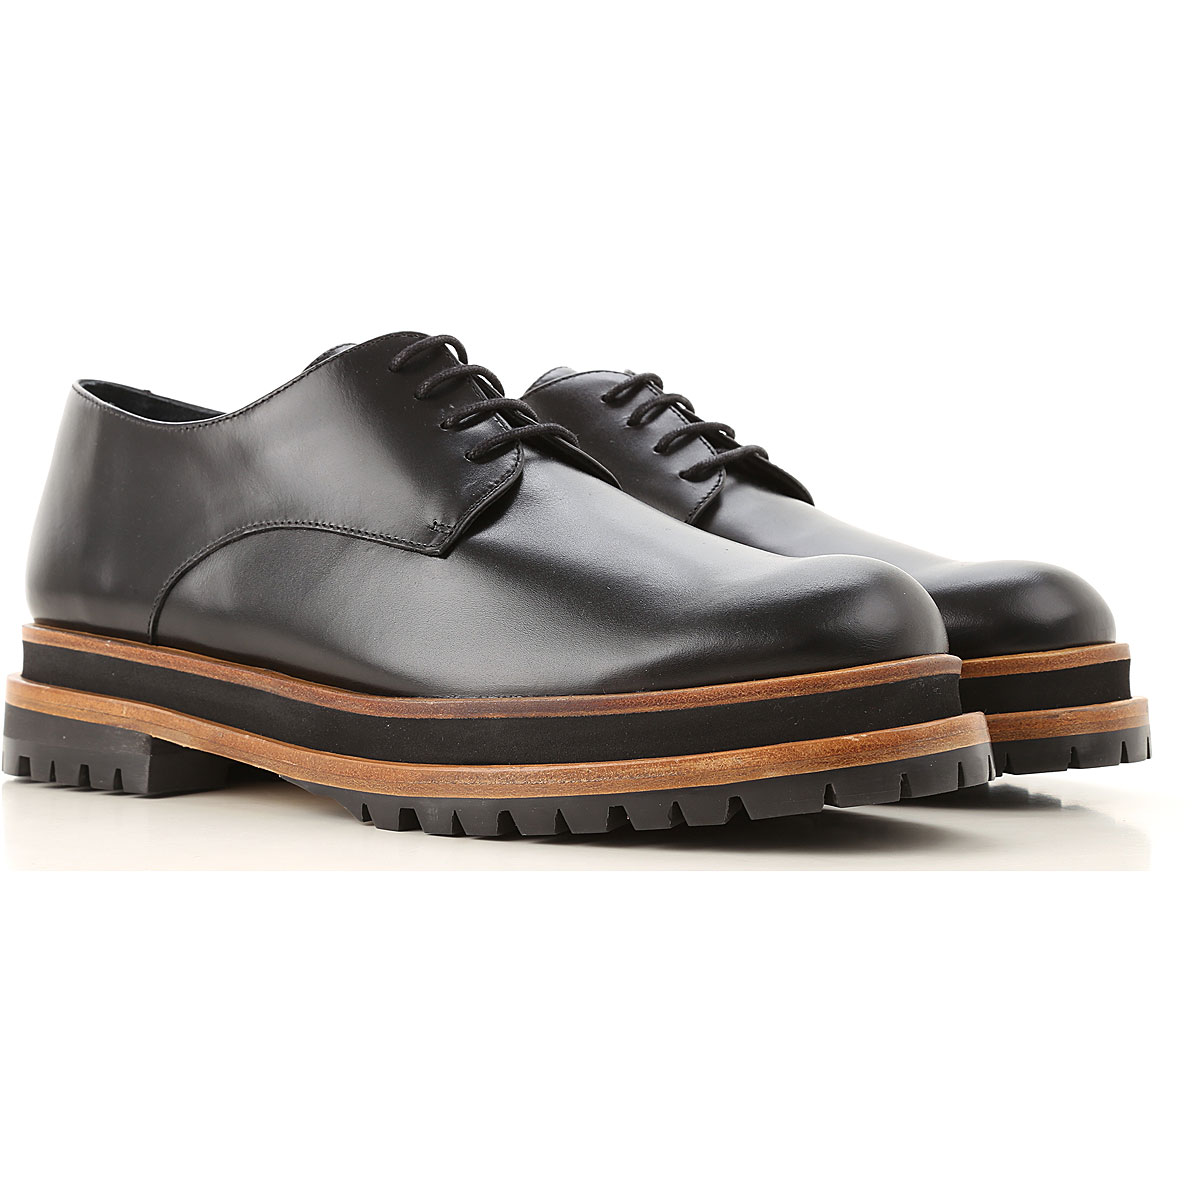 Paloma Barcelo Lace Up Shoes for Men Oxfords, Derbies and Brogues On Sale, Black, Leather, 2019, 10 6 7 8 9